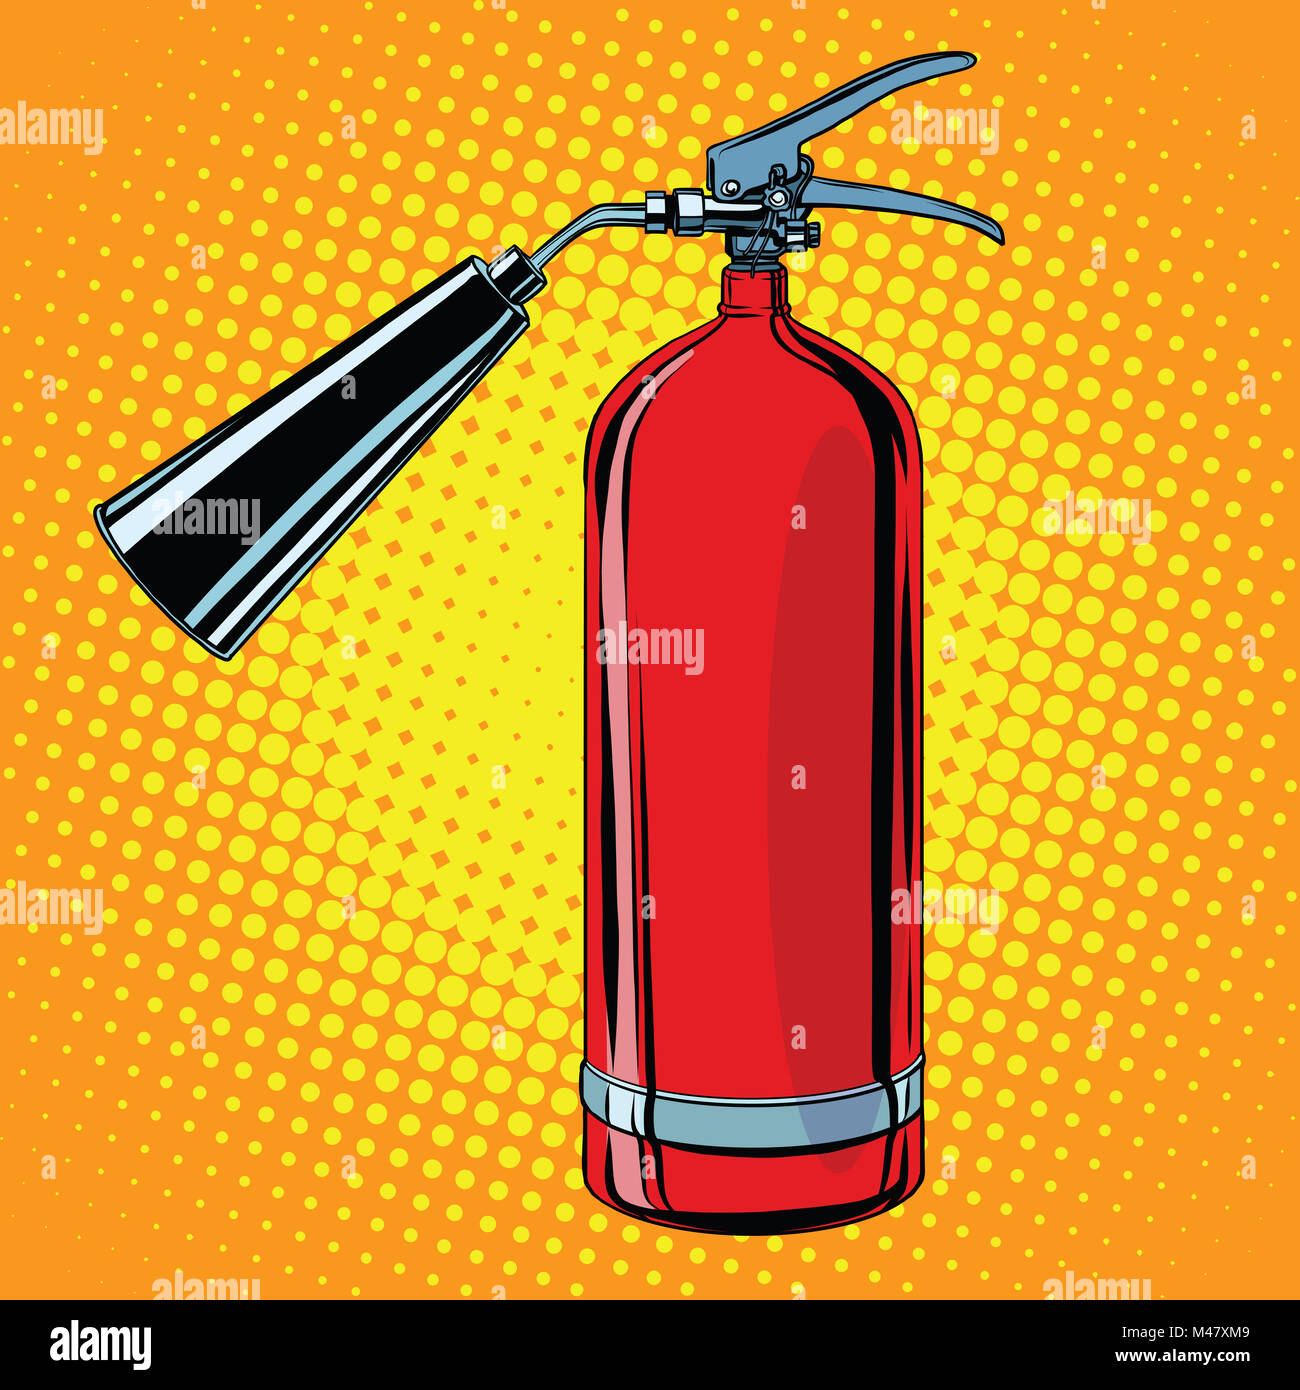 realistic red fire extinguisher pop art - Stock Image